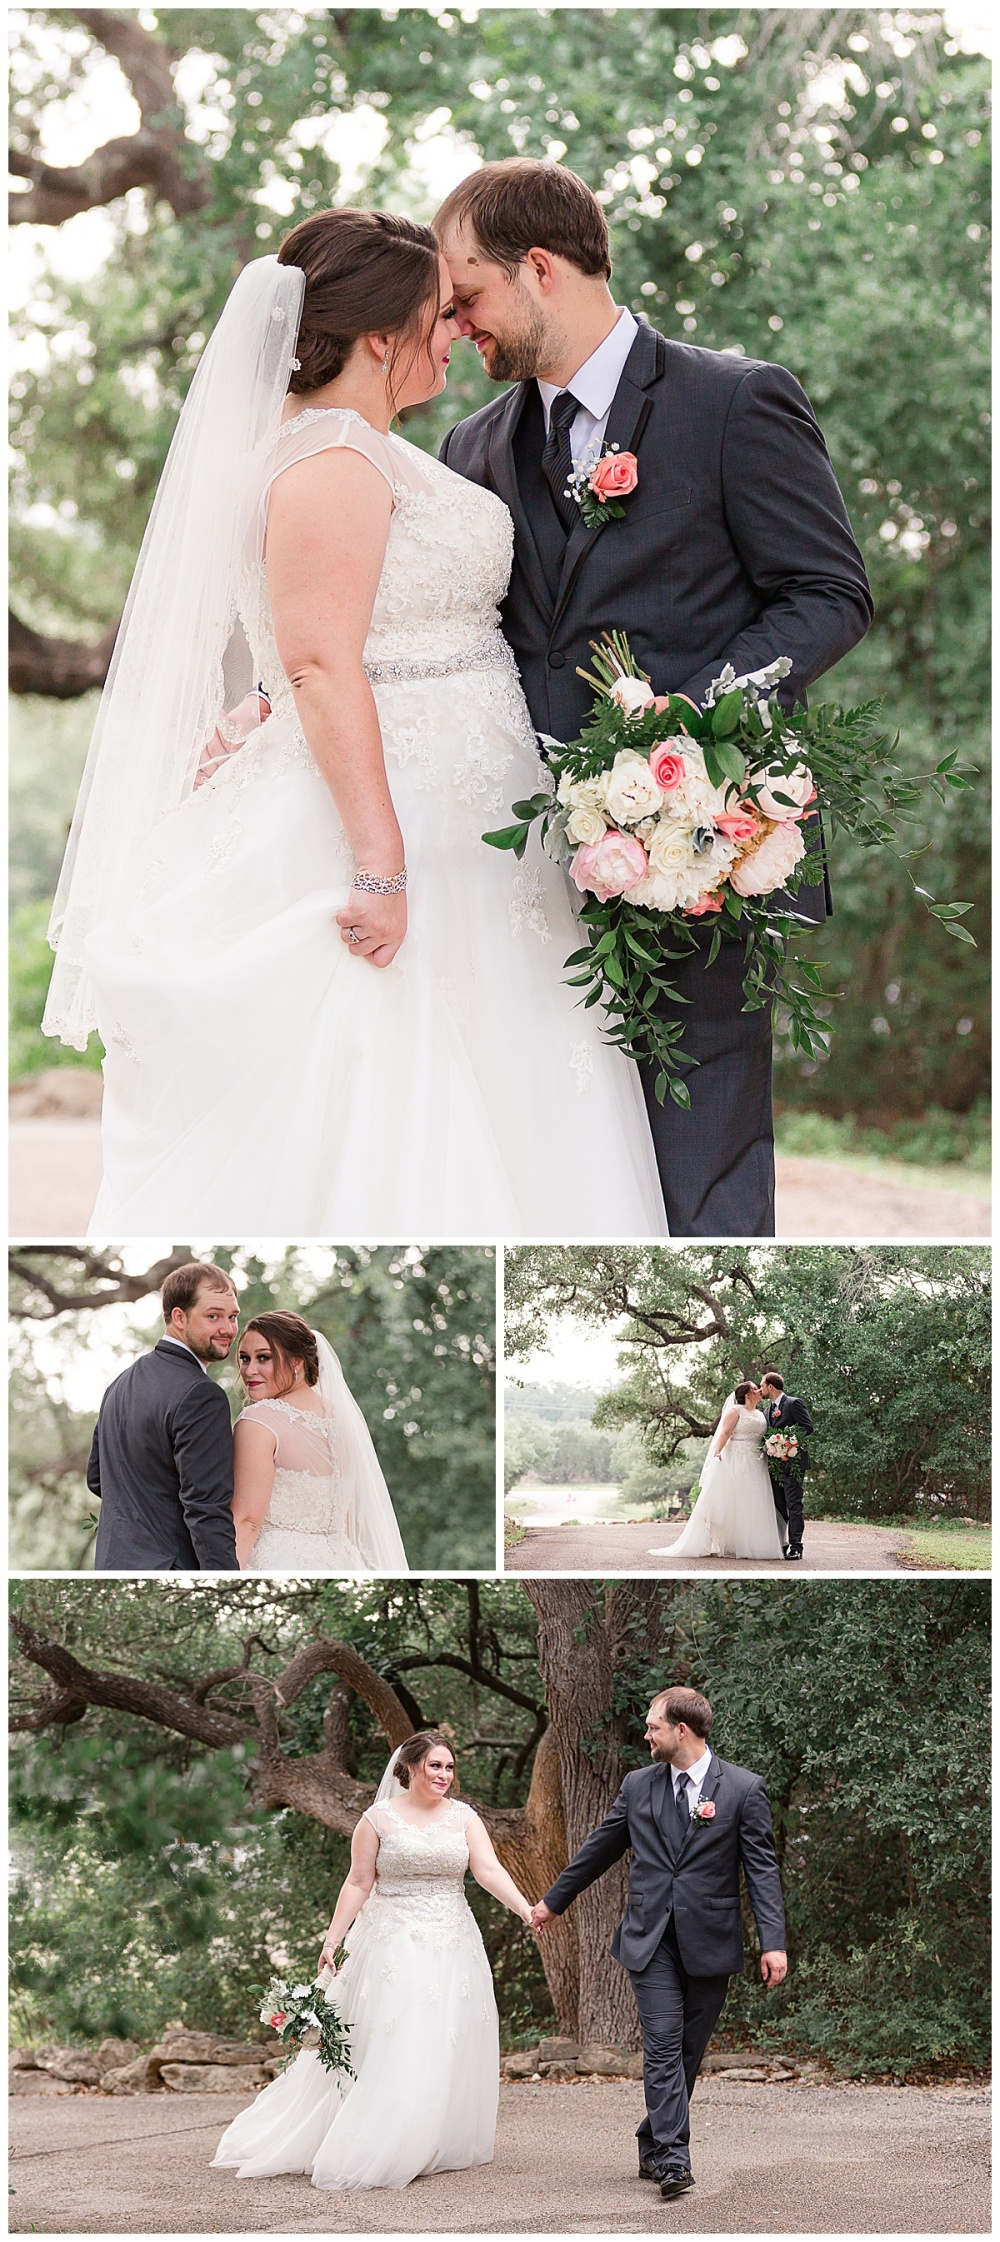 Michael-Tiffany-Wedding-New-Braunfels-Texas-Canyon-Lake-Cabins-and-Cottages-Carly-Barton-Photography_0037.jpg